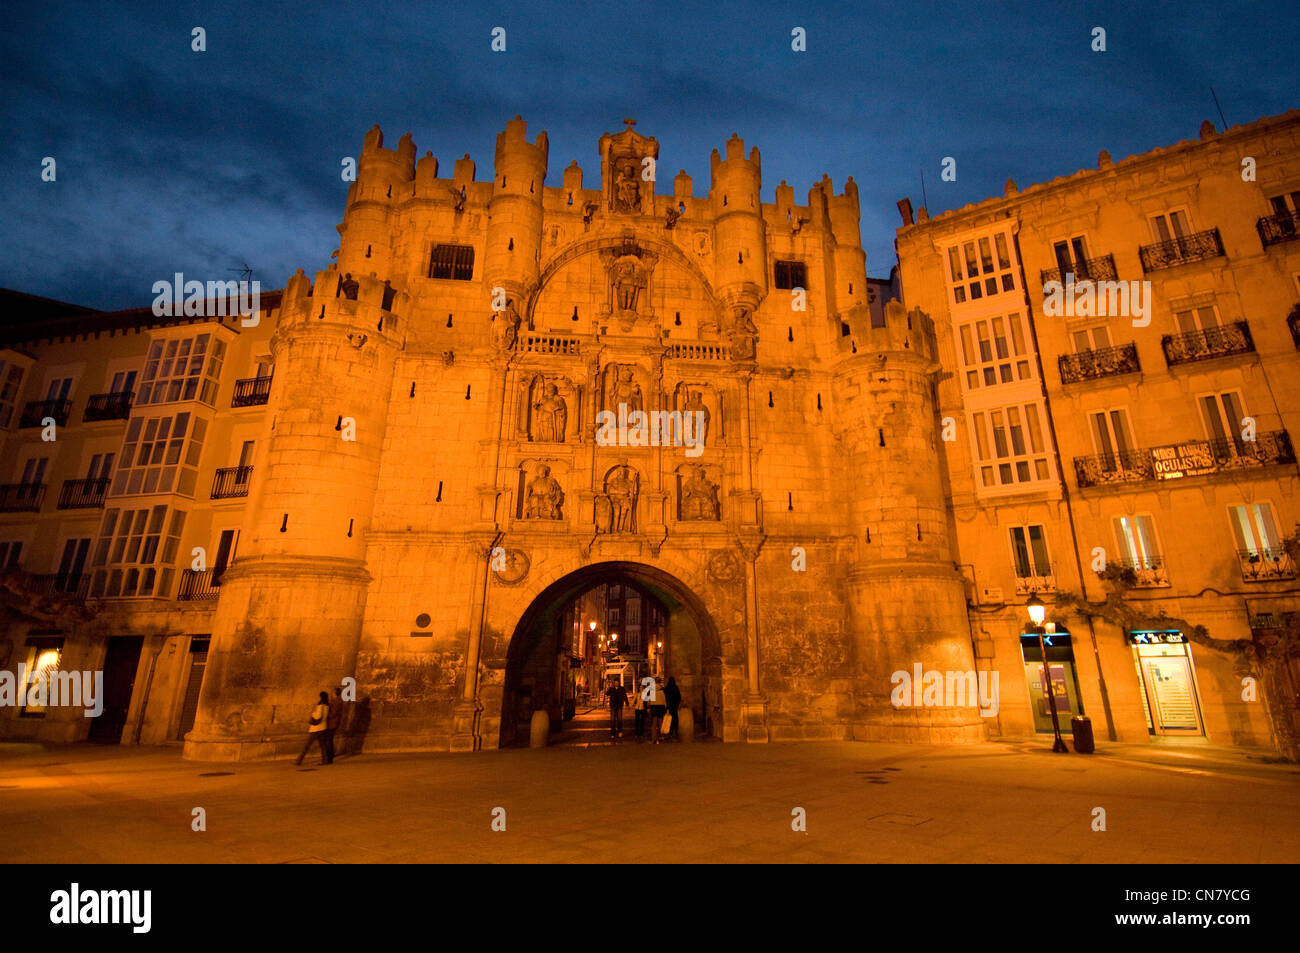 Spain, Castile and Leon, Burgos, Gate Santa Maria, dated 14-15th centuries - Stock Image